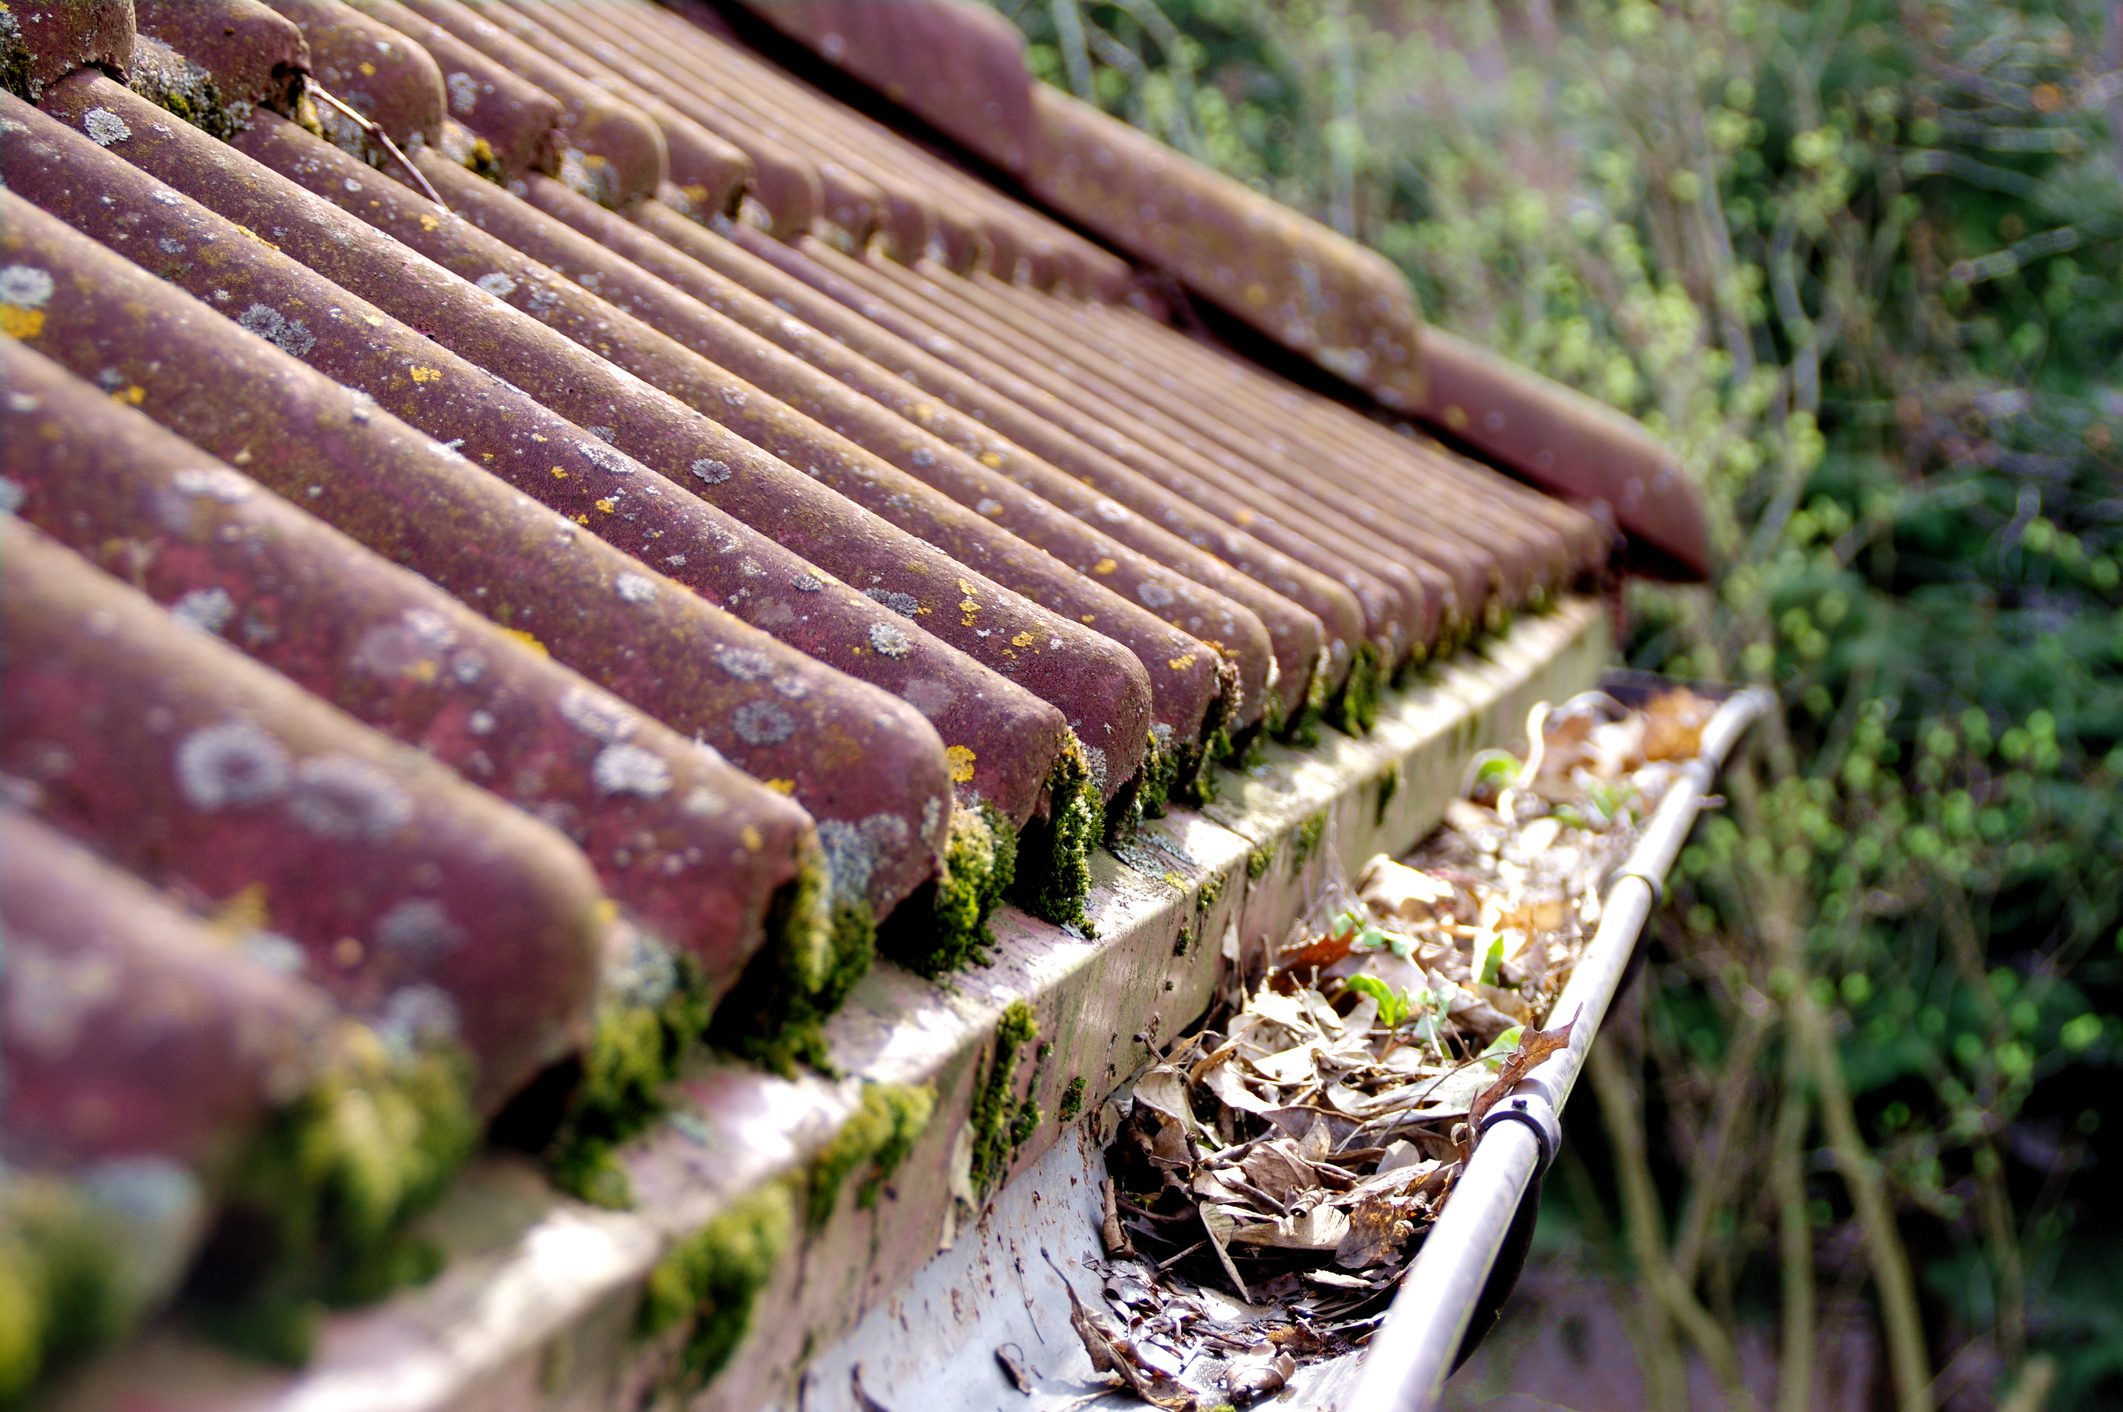 GUTTERS - Don't wait till its too late. Preventative maintenance will give you peace of mind. We can help.Dirty gutters can contribute to dry rot and ruin your roof membrane 65% faster then roofs with clean gutters.85% of gutters go un-cleaned every year. Schedule a yearly cleaning and have peace of mind your gutters are in good hands.